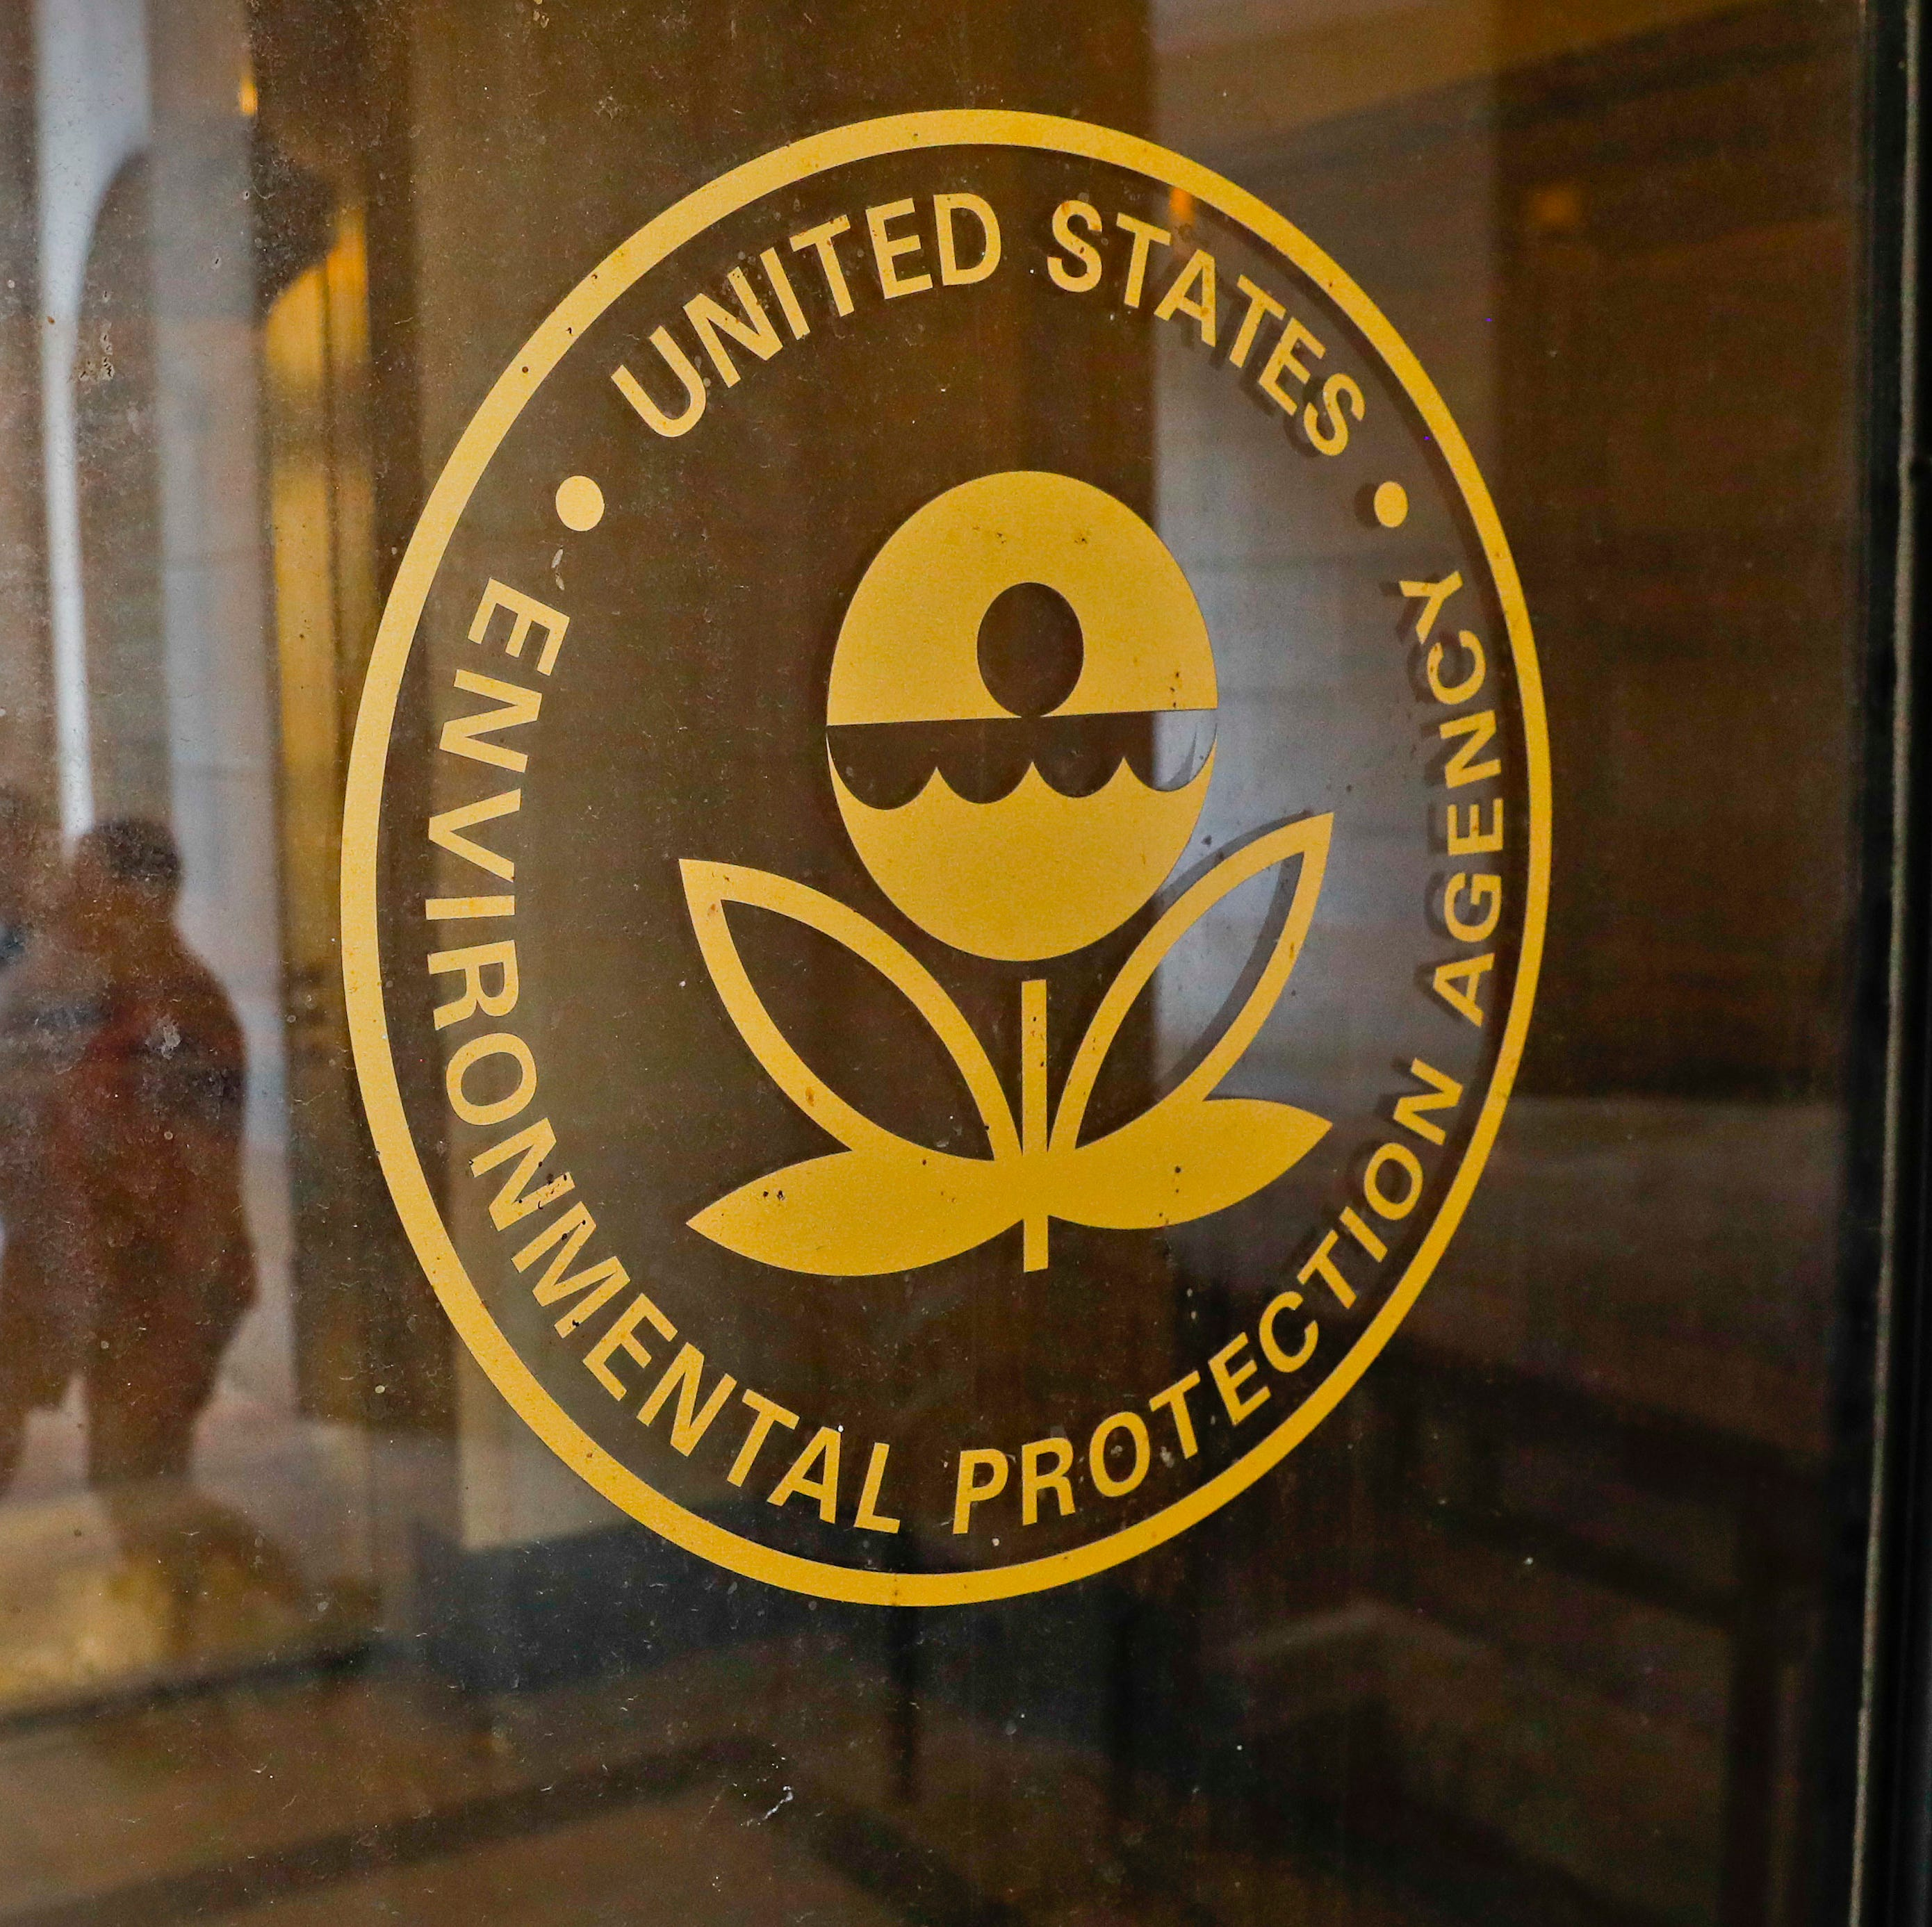 Radioactive waste sites flooded in Iowa, other states. The EPA says there's been no toxic releases.